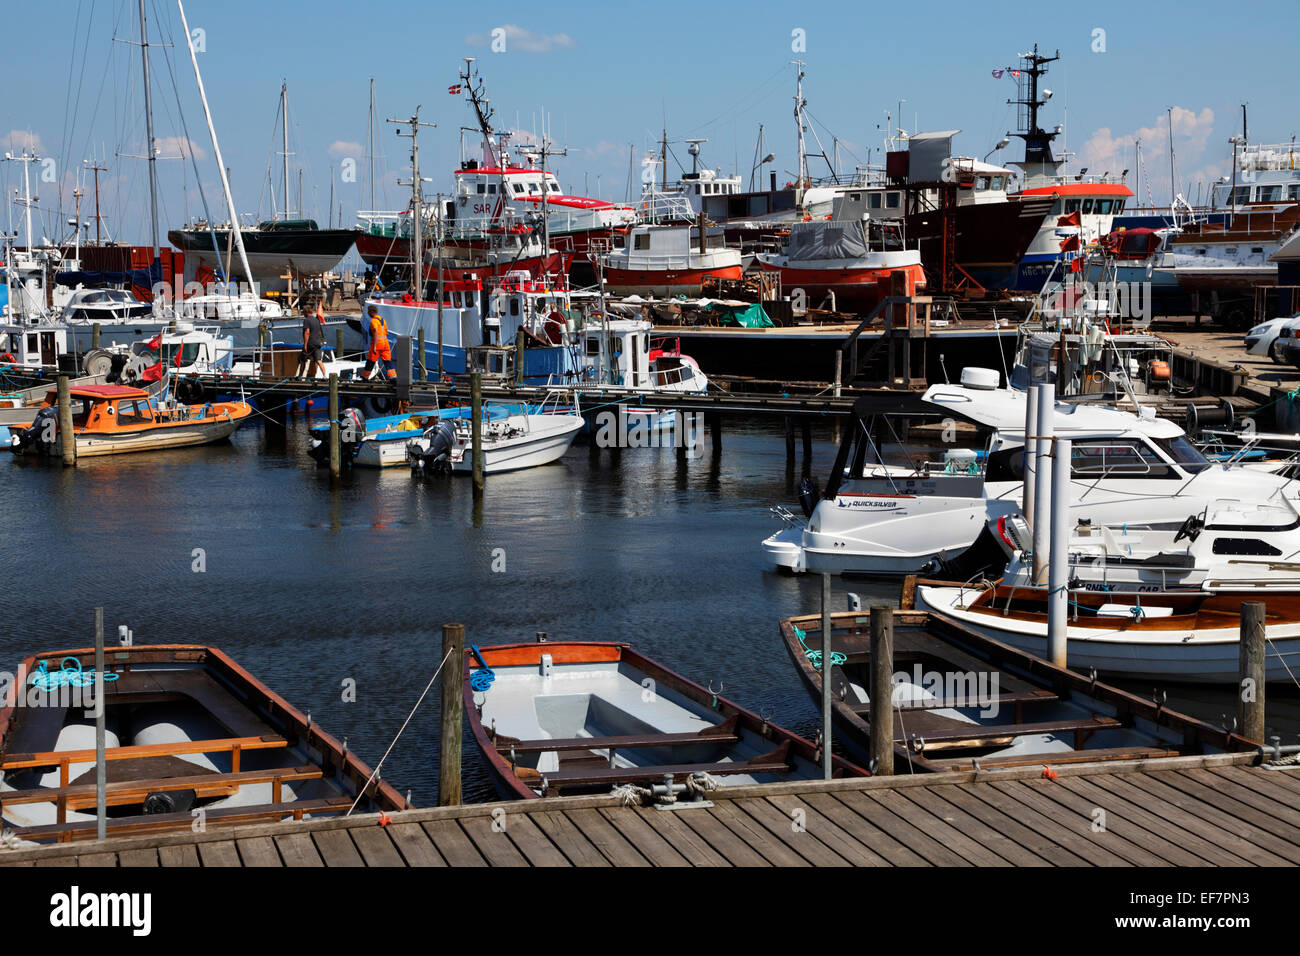 Gilleleje Harbour, North Zealand, Denmark, on a warm and sunny summer's day. Shipyard and slipway in the background. - Stock Image